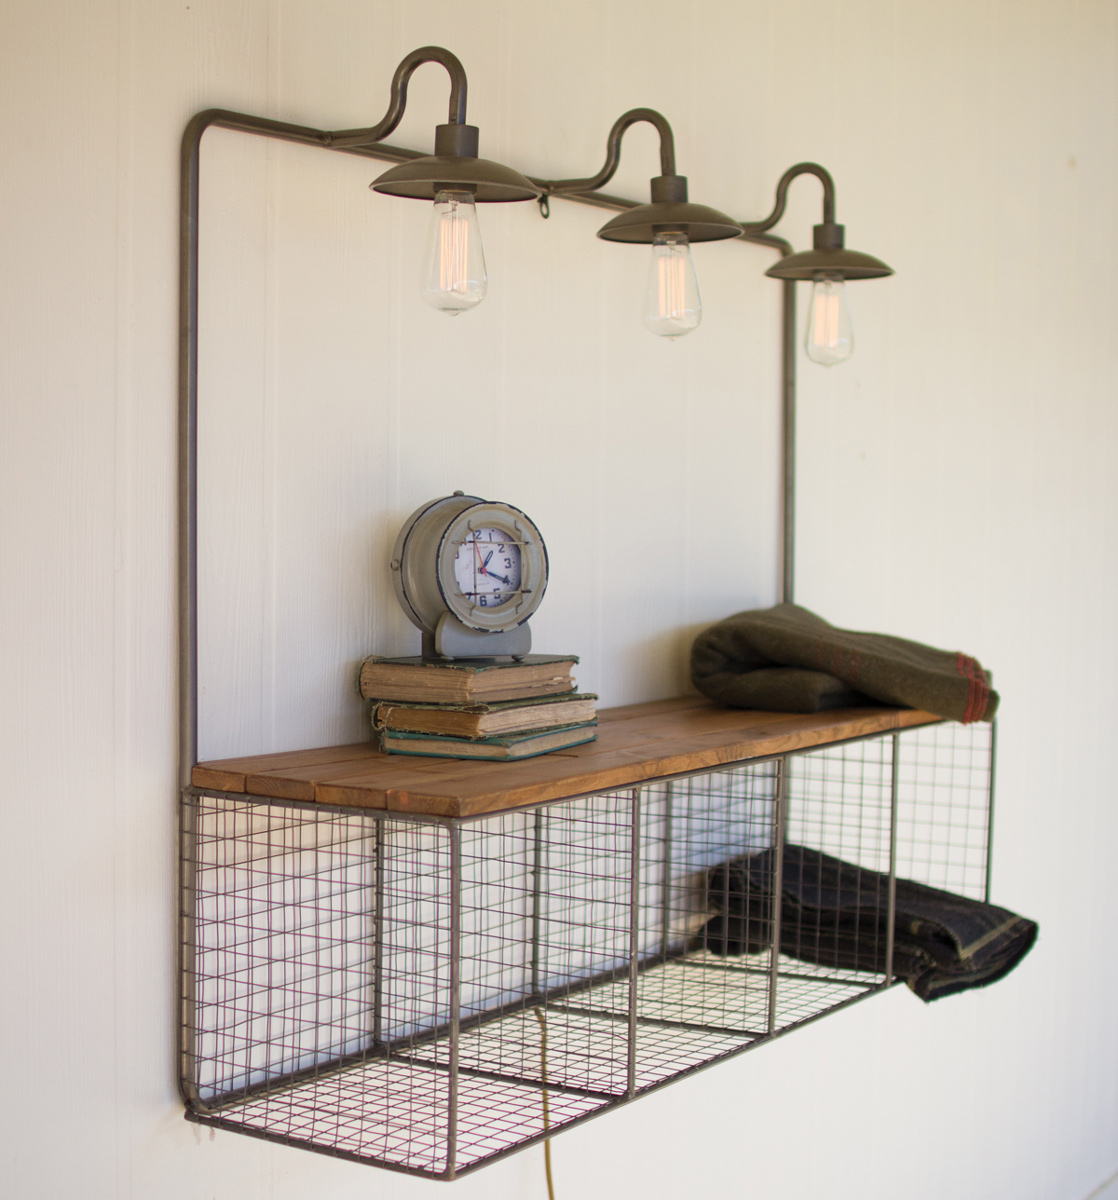 Hanging Metal and Wood Cubby with Lights